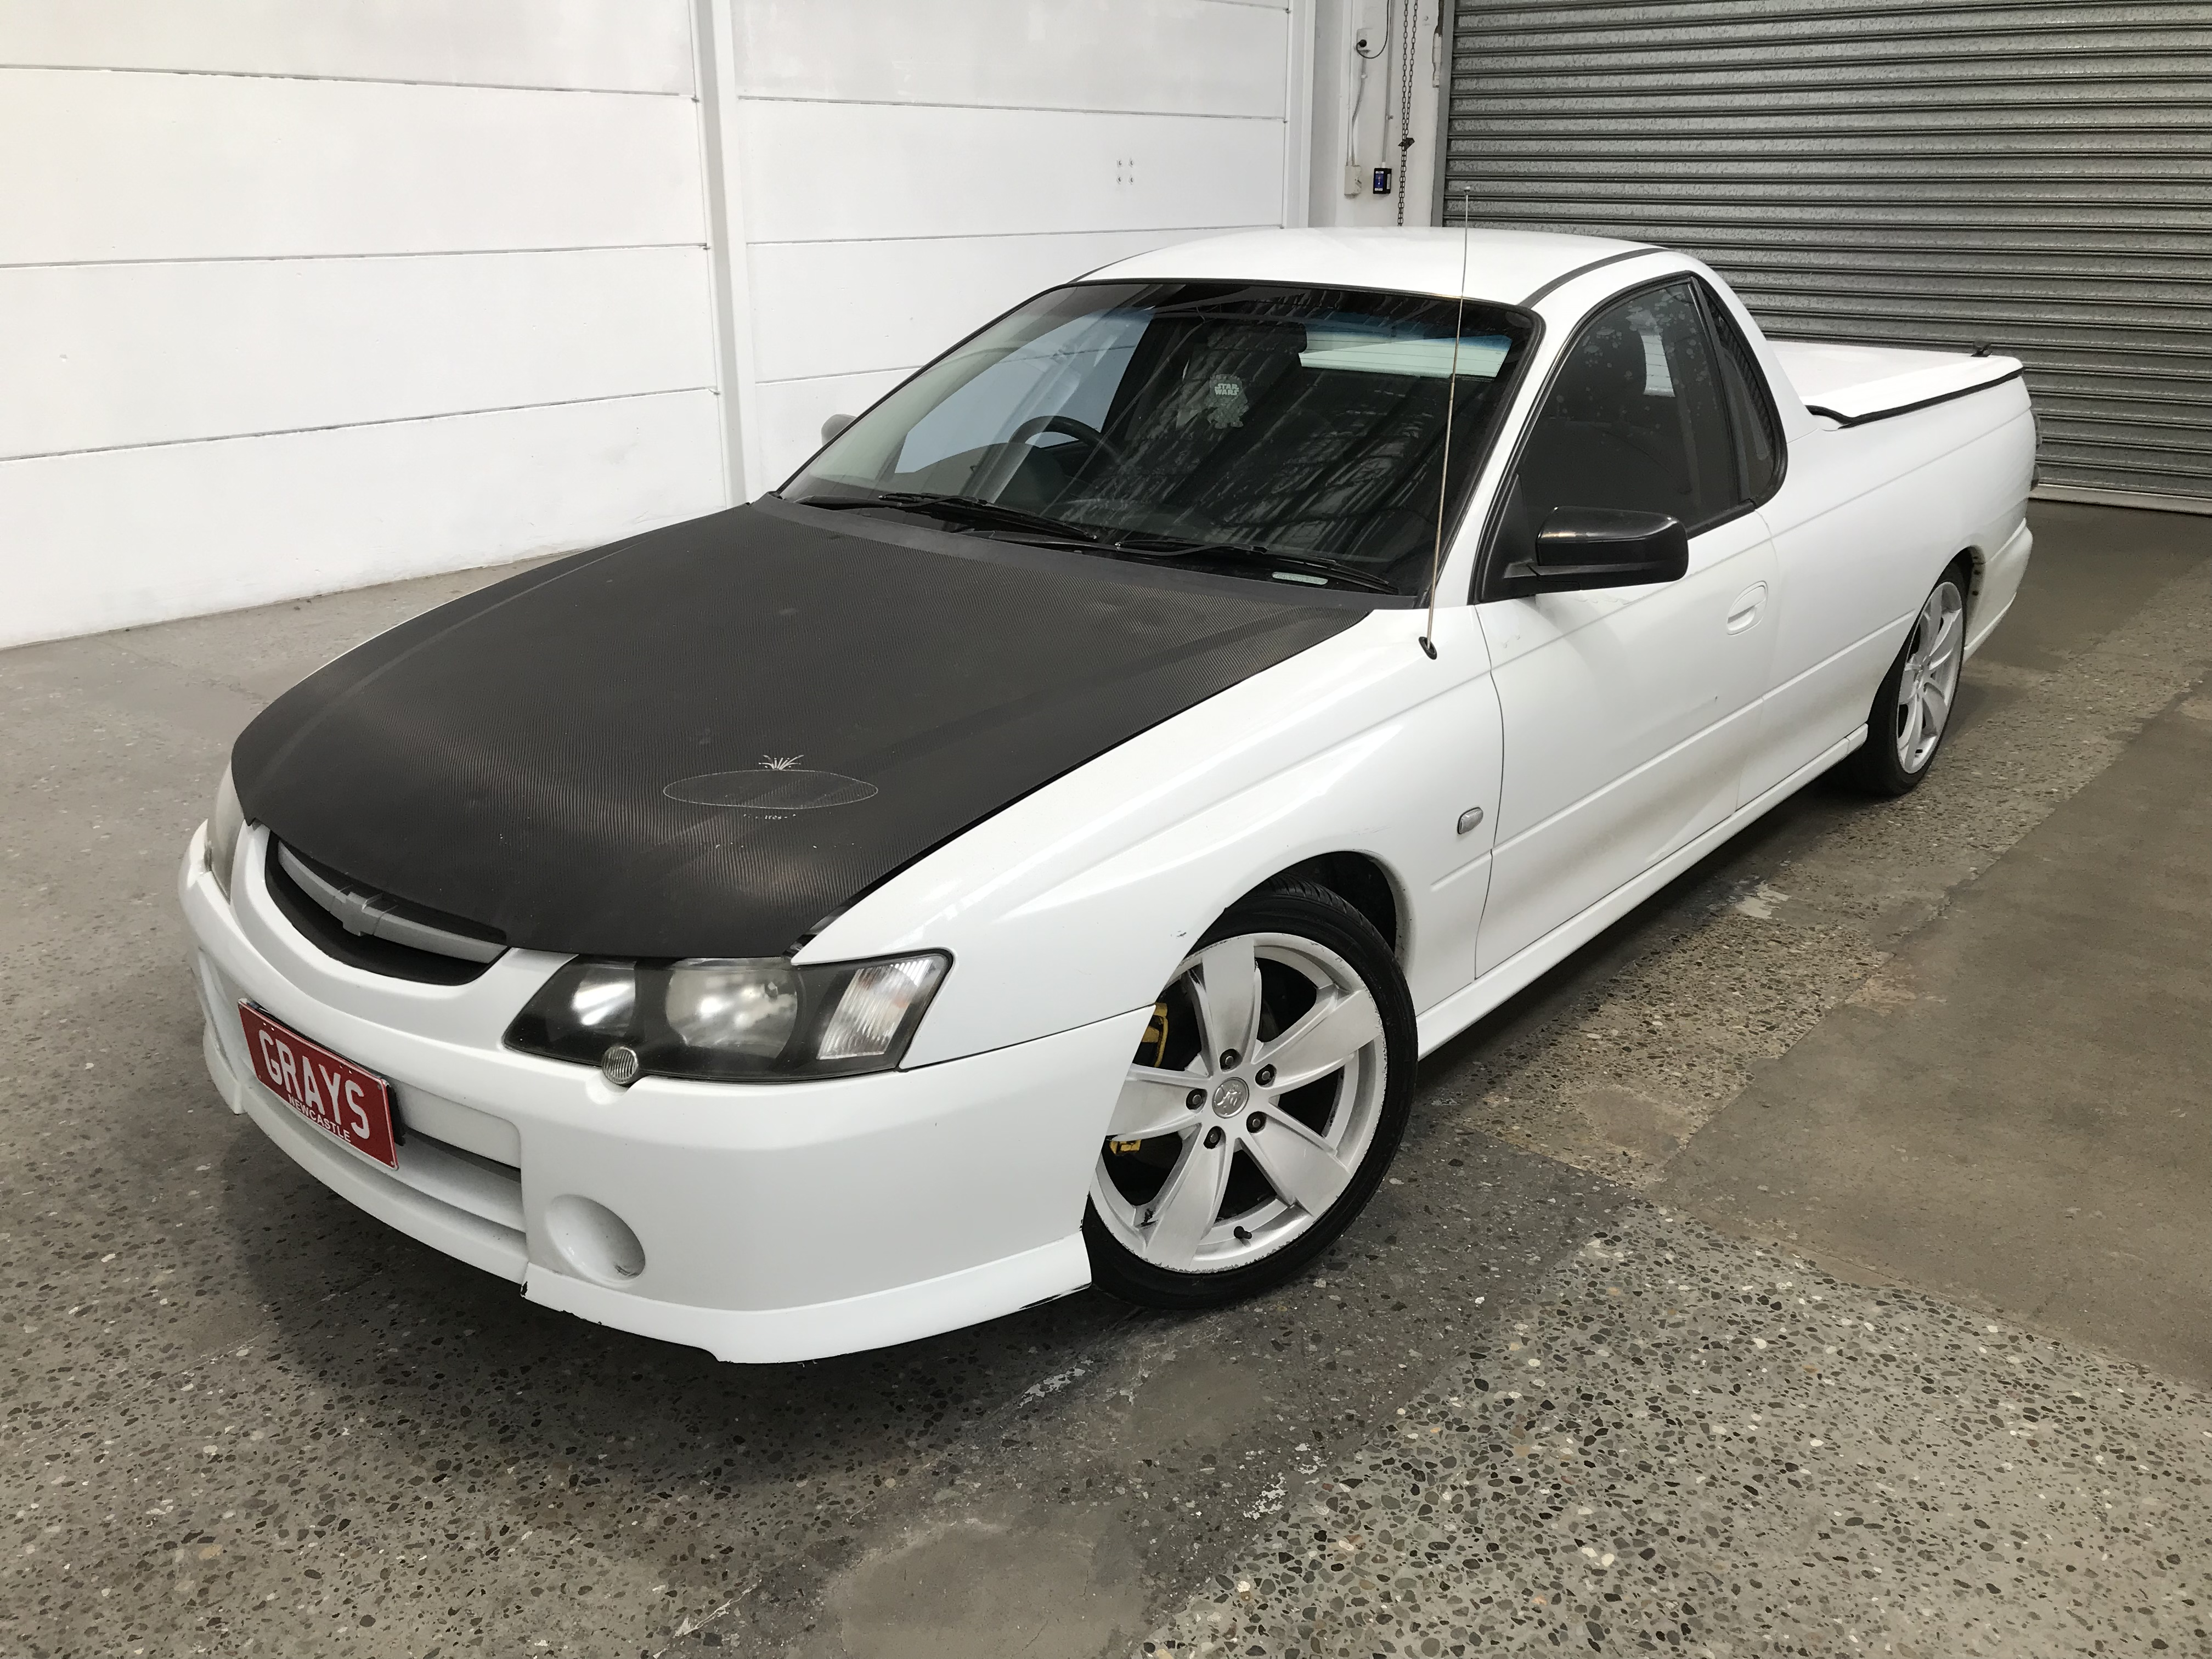 2003 Holden Commodore S pack Y Series Manual Ute WOVR